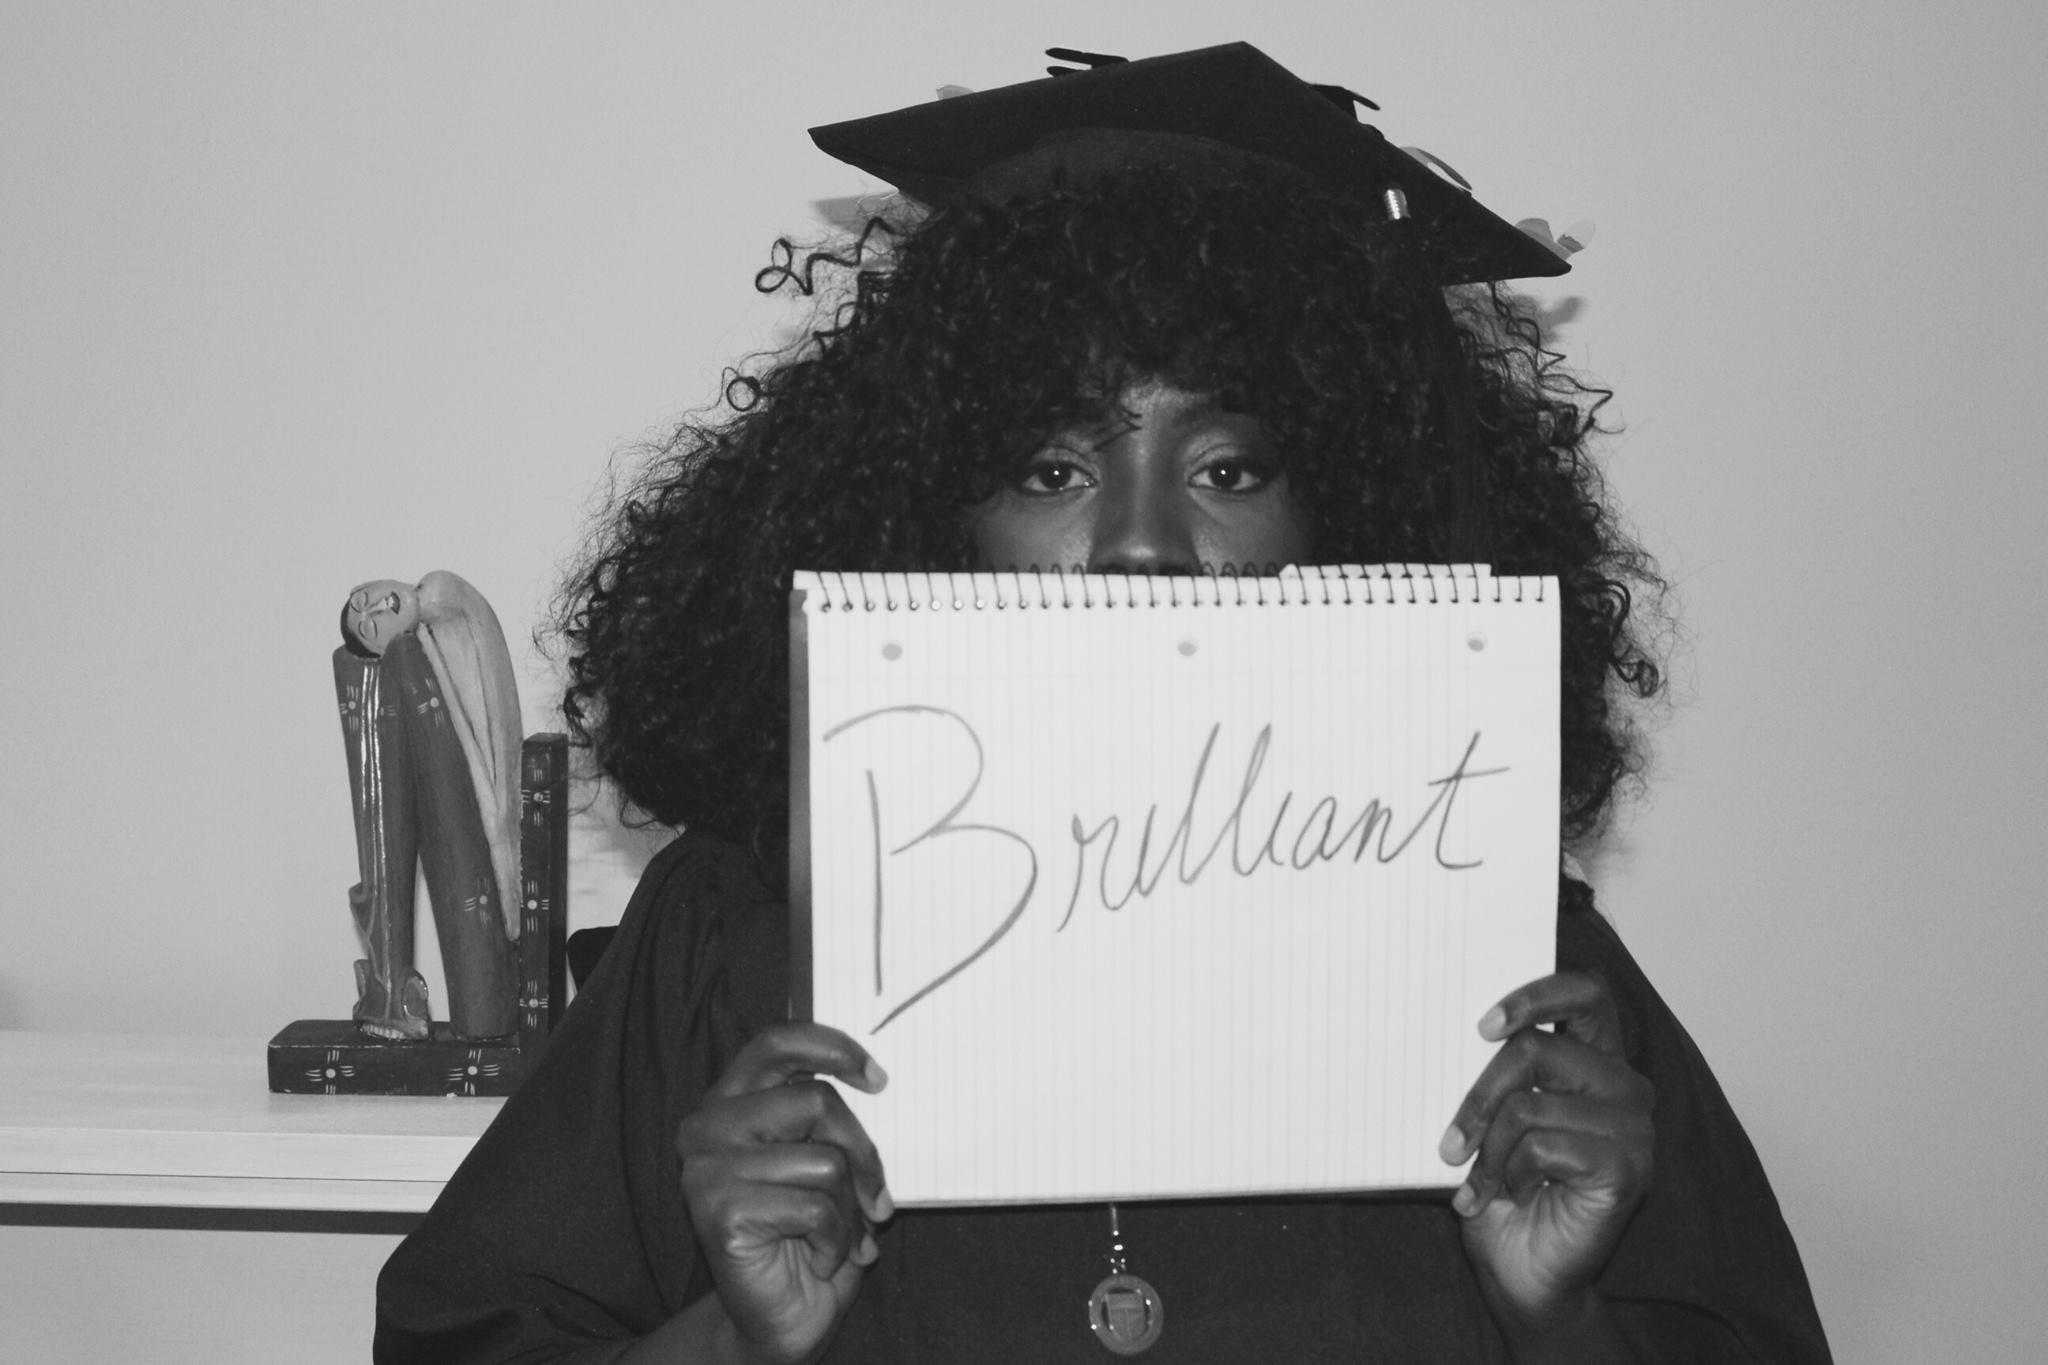 Day 15 of 31 Days a Woman, which also happened to be the day of my graduation from Rutgers University. The word of the day was brilliant.